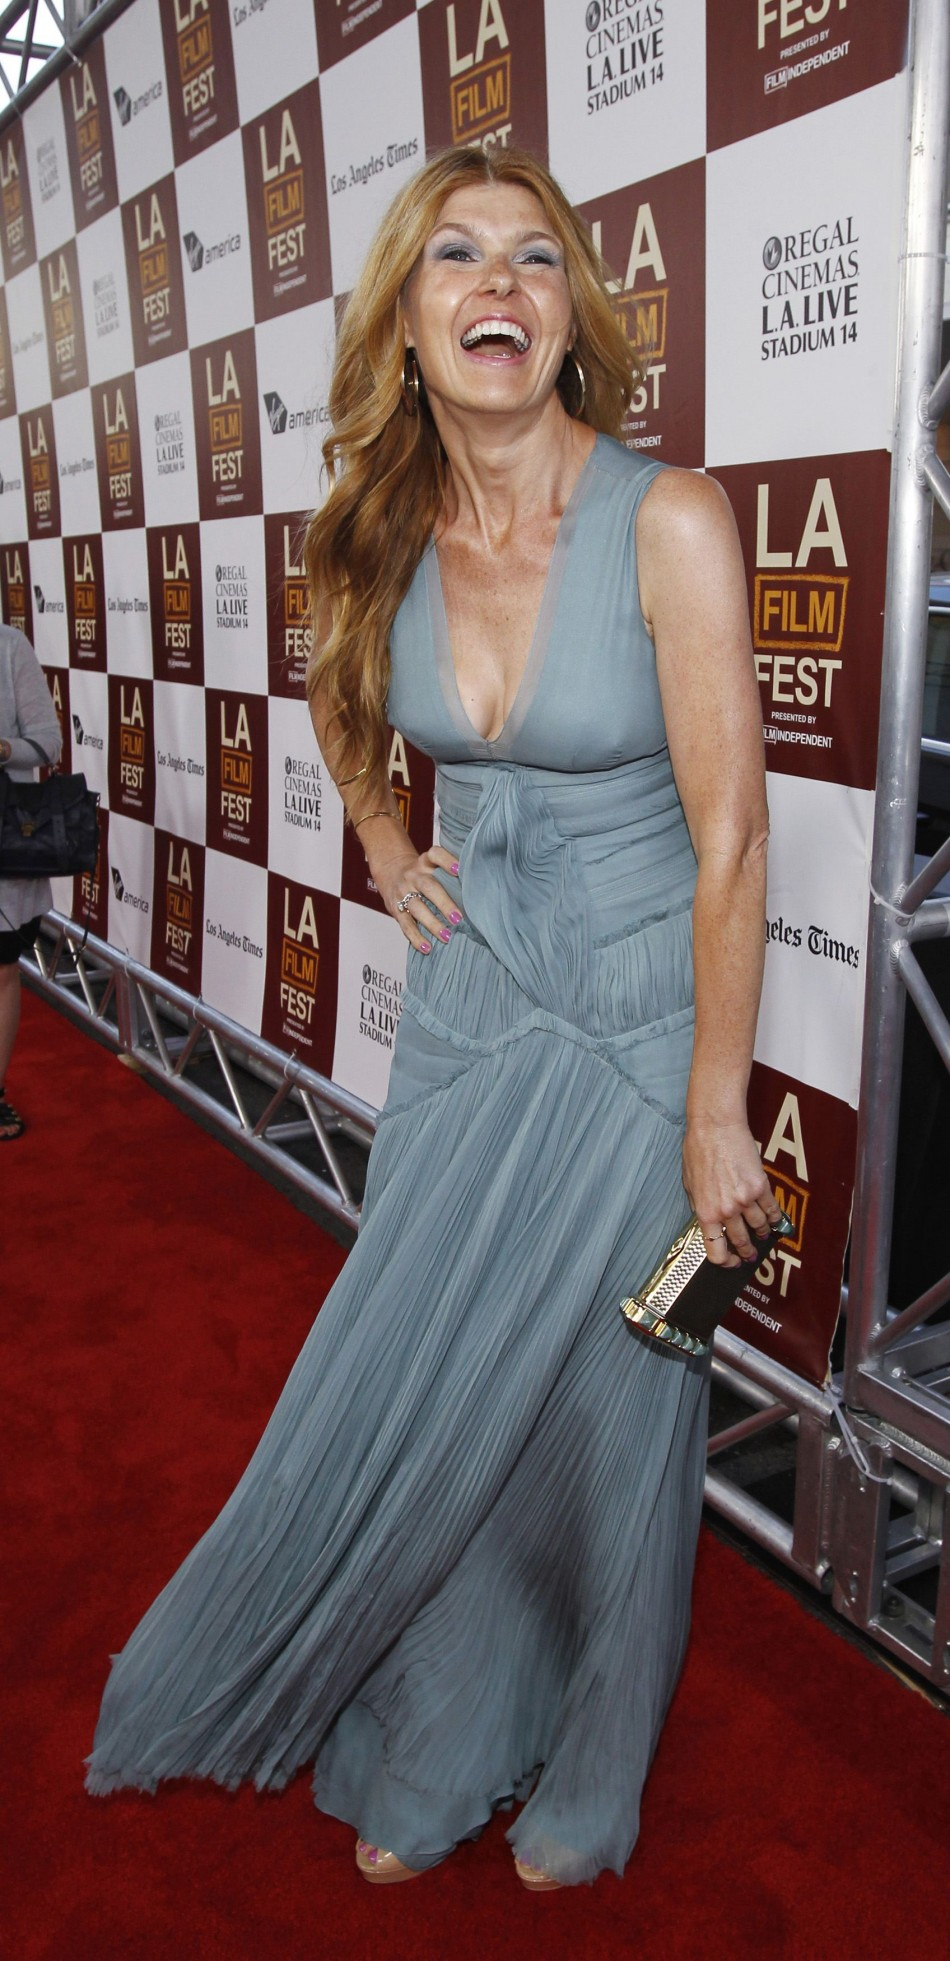 Britton poses at the premiere of quotSeeking a Friend for the End of the Worldquot during the Los Angeles Film Festival in Los Angeles